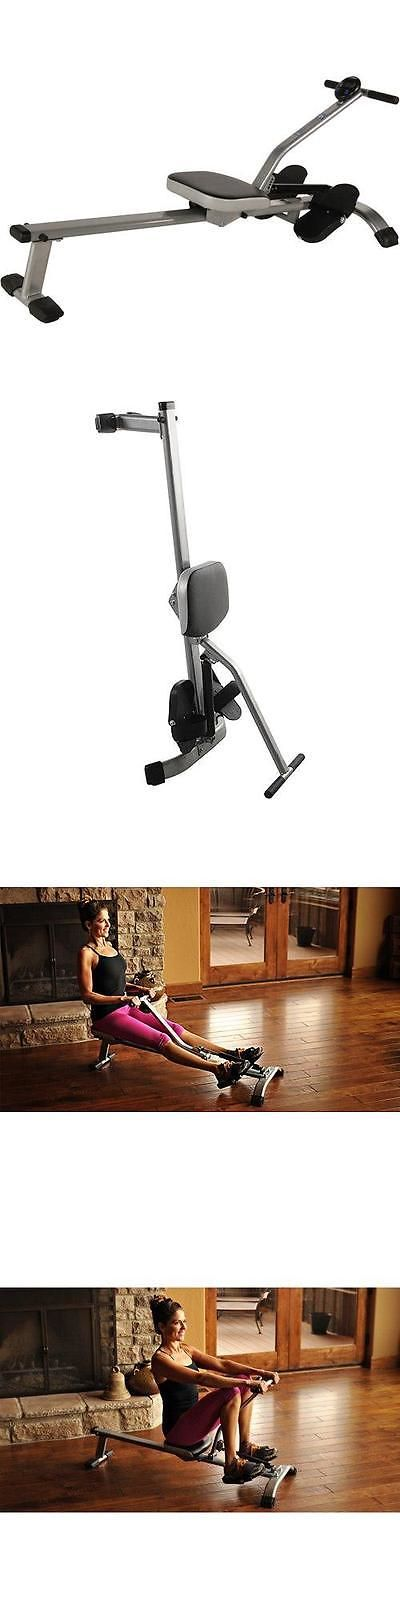 Rowing Machines 28060: Stamina Inmotion Rower -> BUY IT NOW ONLY: $91.44 on eBay!